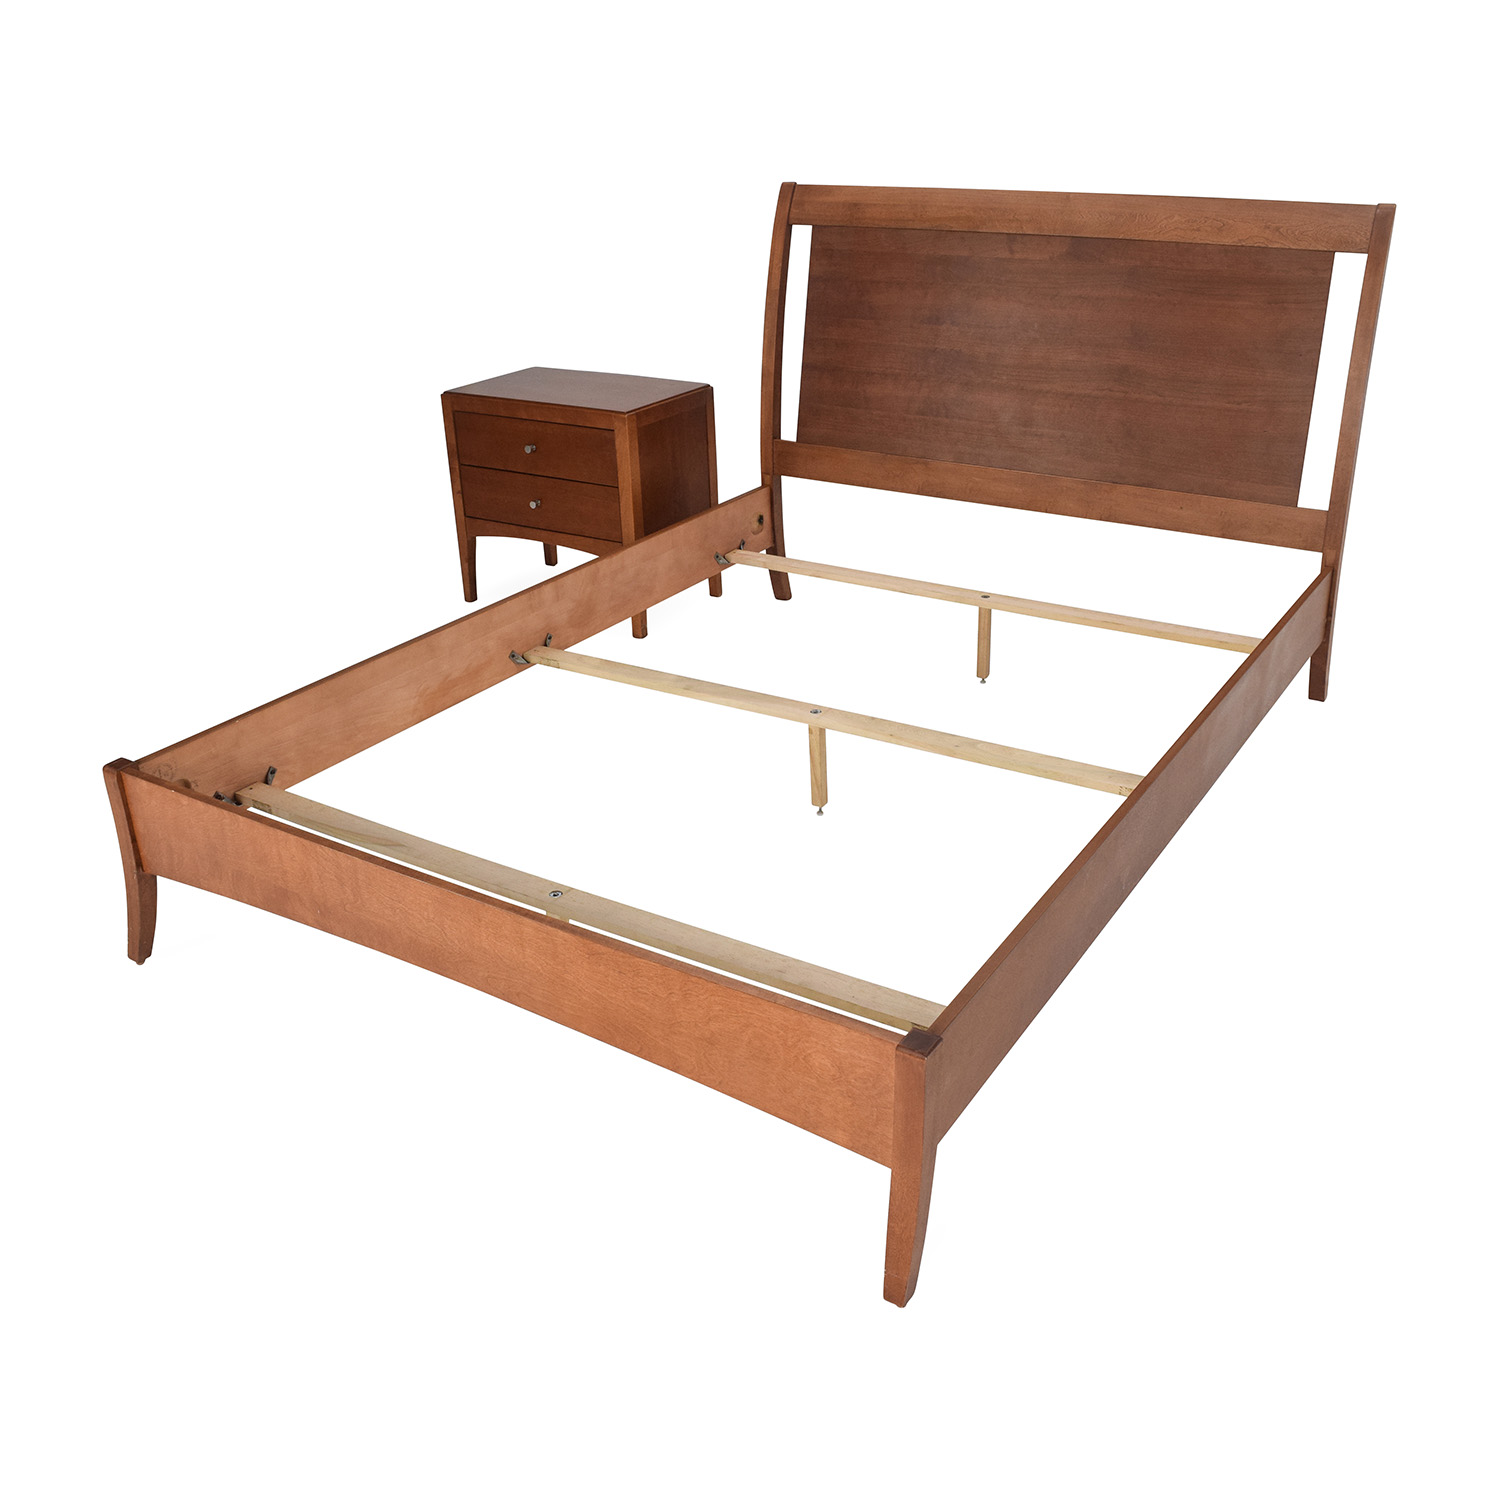 72 off macys macy s bed frame and matching side table 10236 | buy macy s bed frame and matching side table